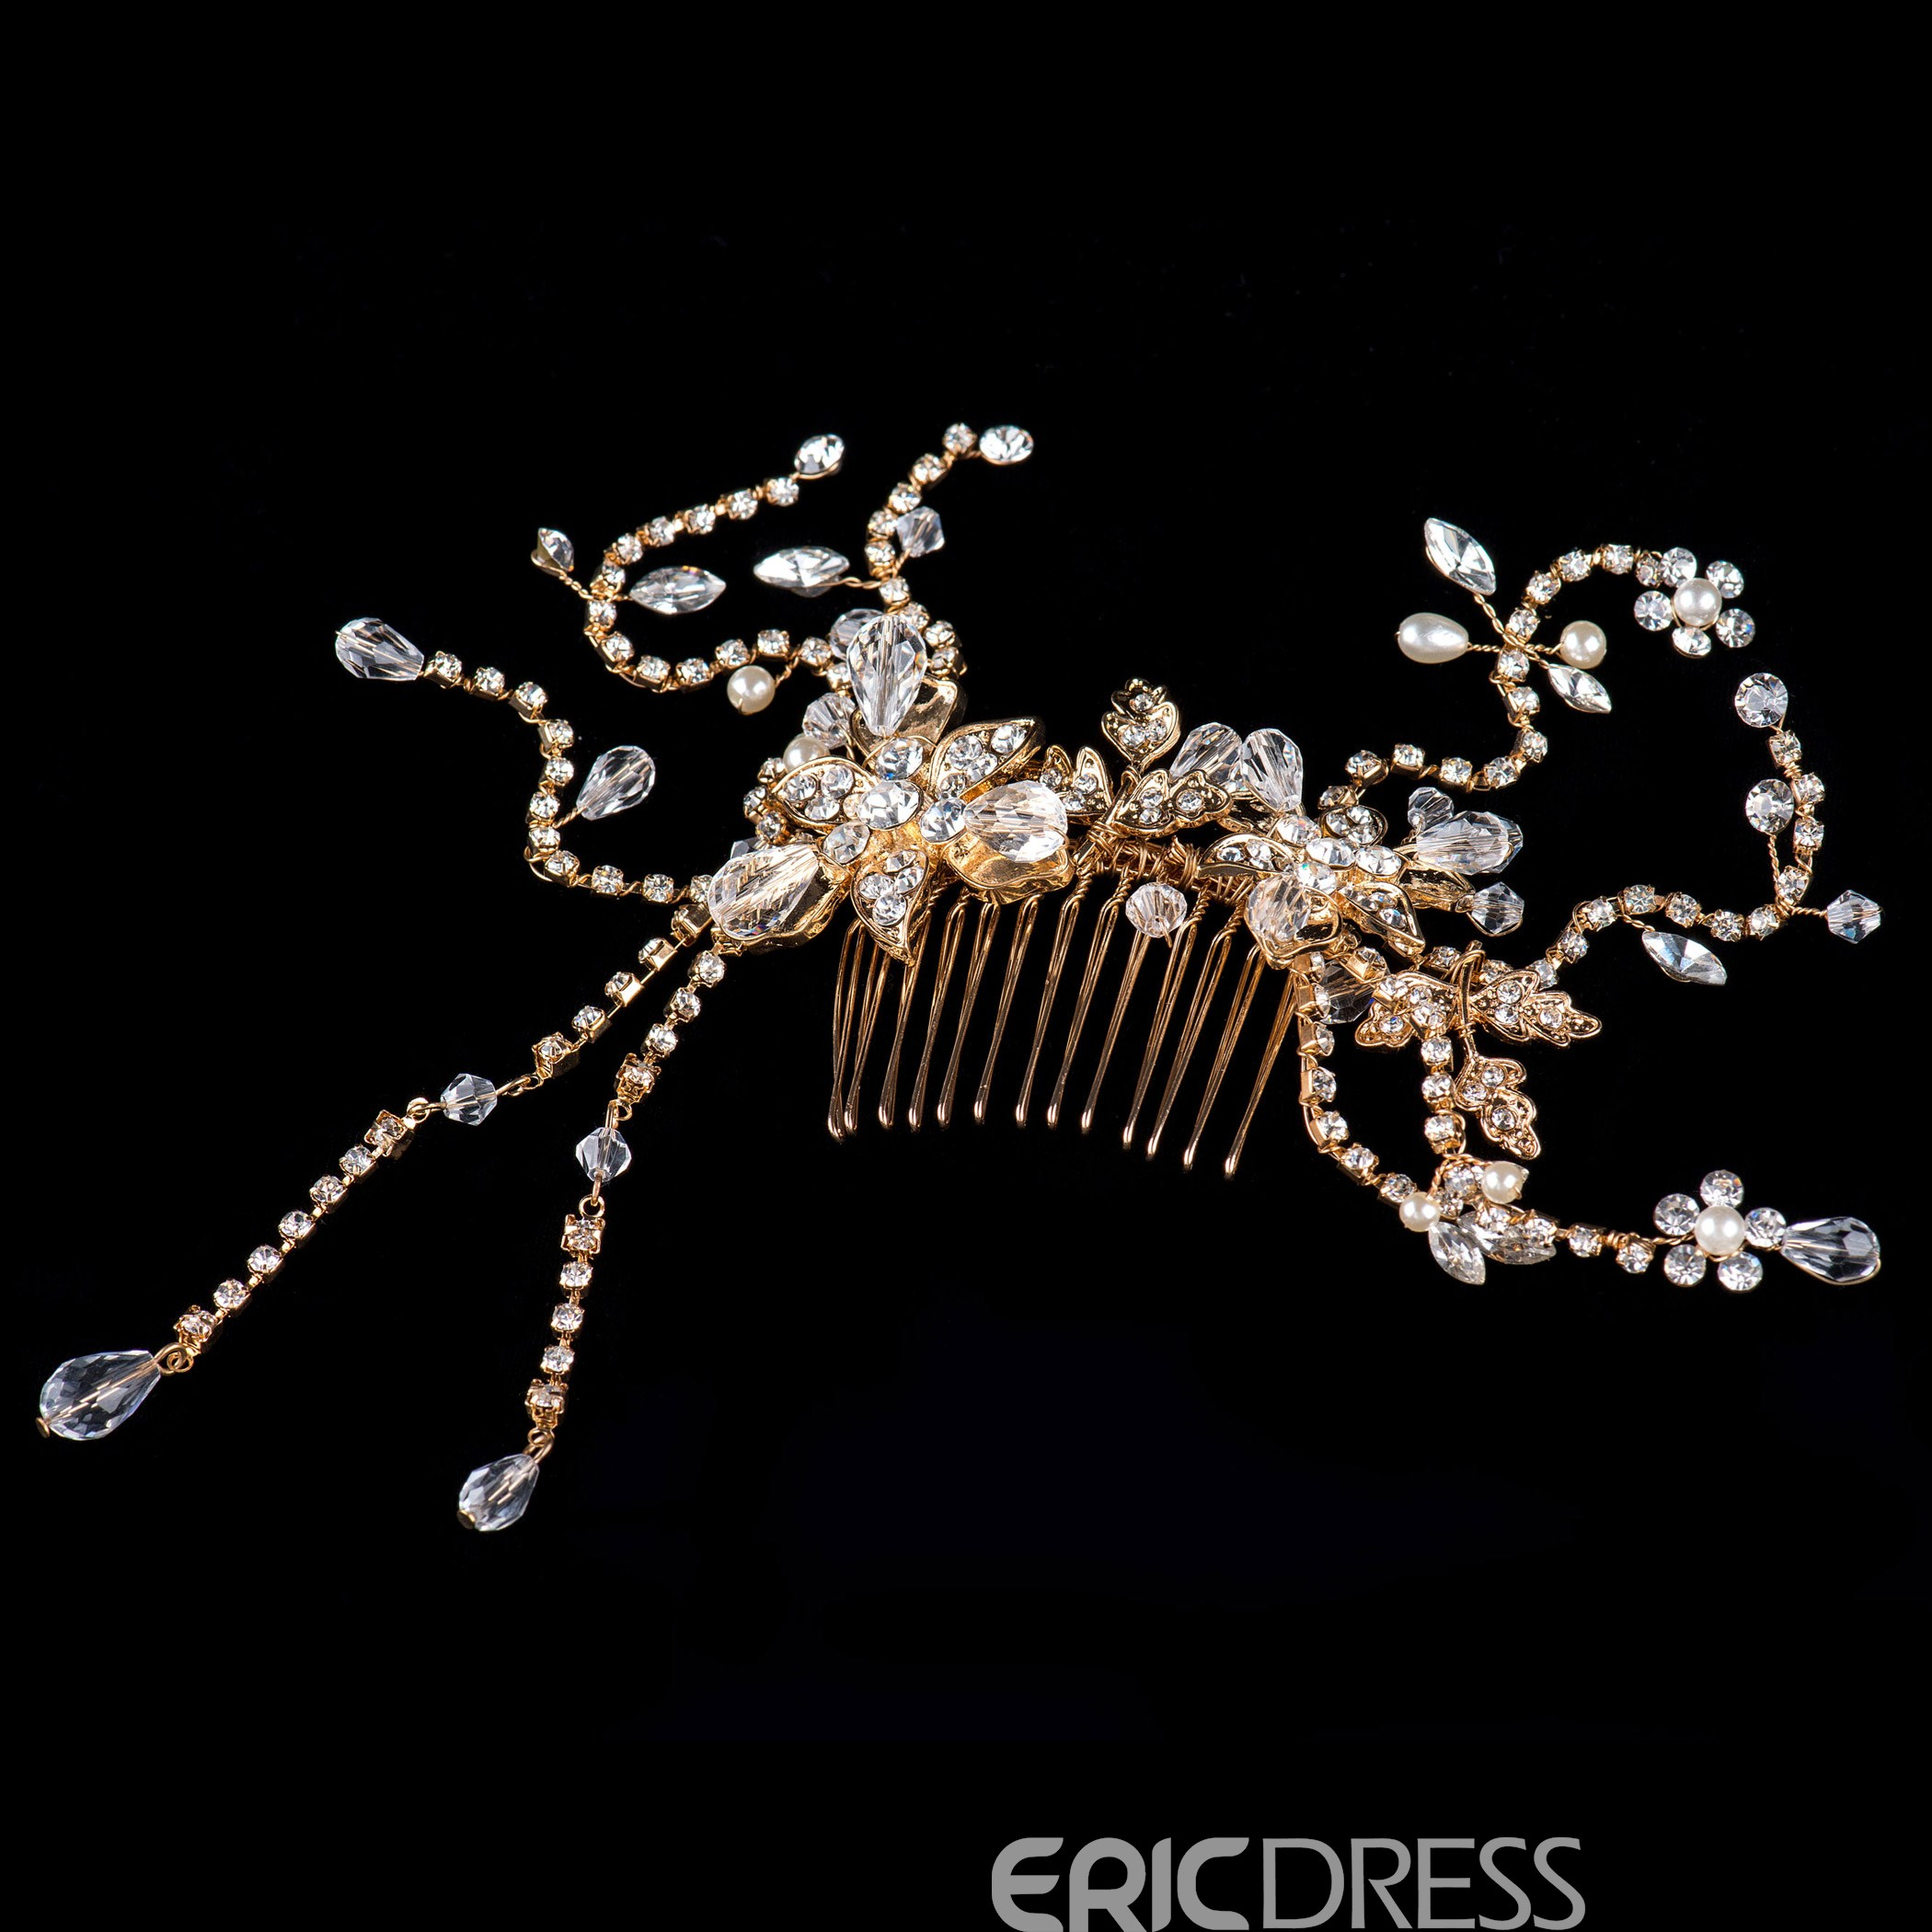 Ericdress Unique Alloy Beading Comb